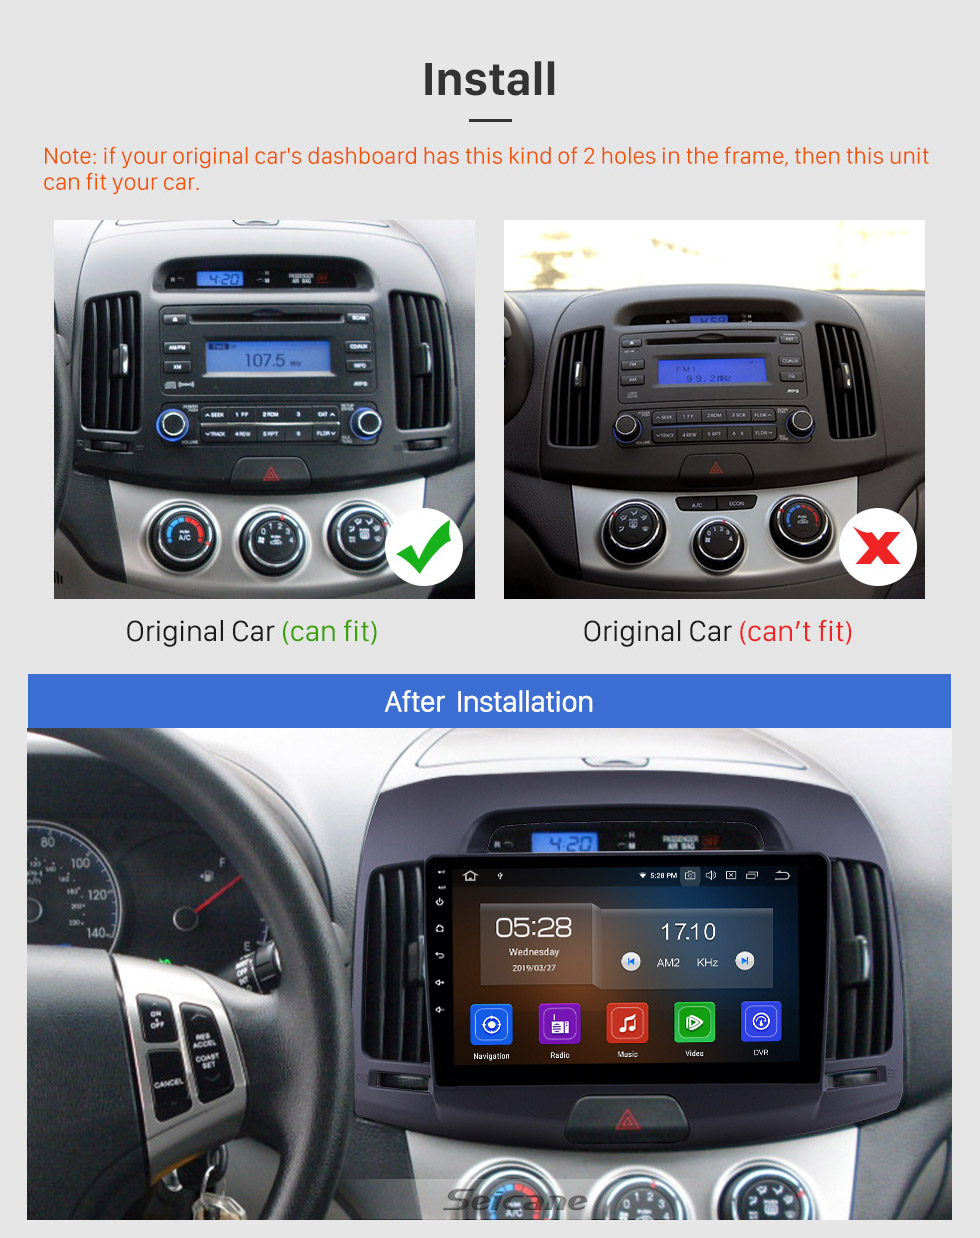 Seicane 2007-2011 Hyundai Elantra Android 9.0 9 inch GPS Navigation Radio Bluetooth HD Touchscreen USB Carplay Music support TPMS OBD2 Steering Wheel Control